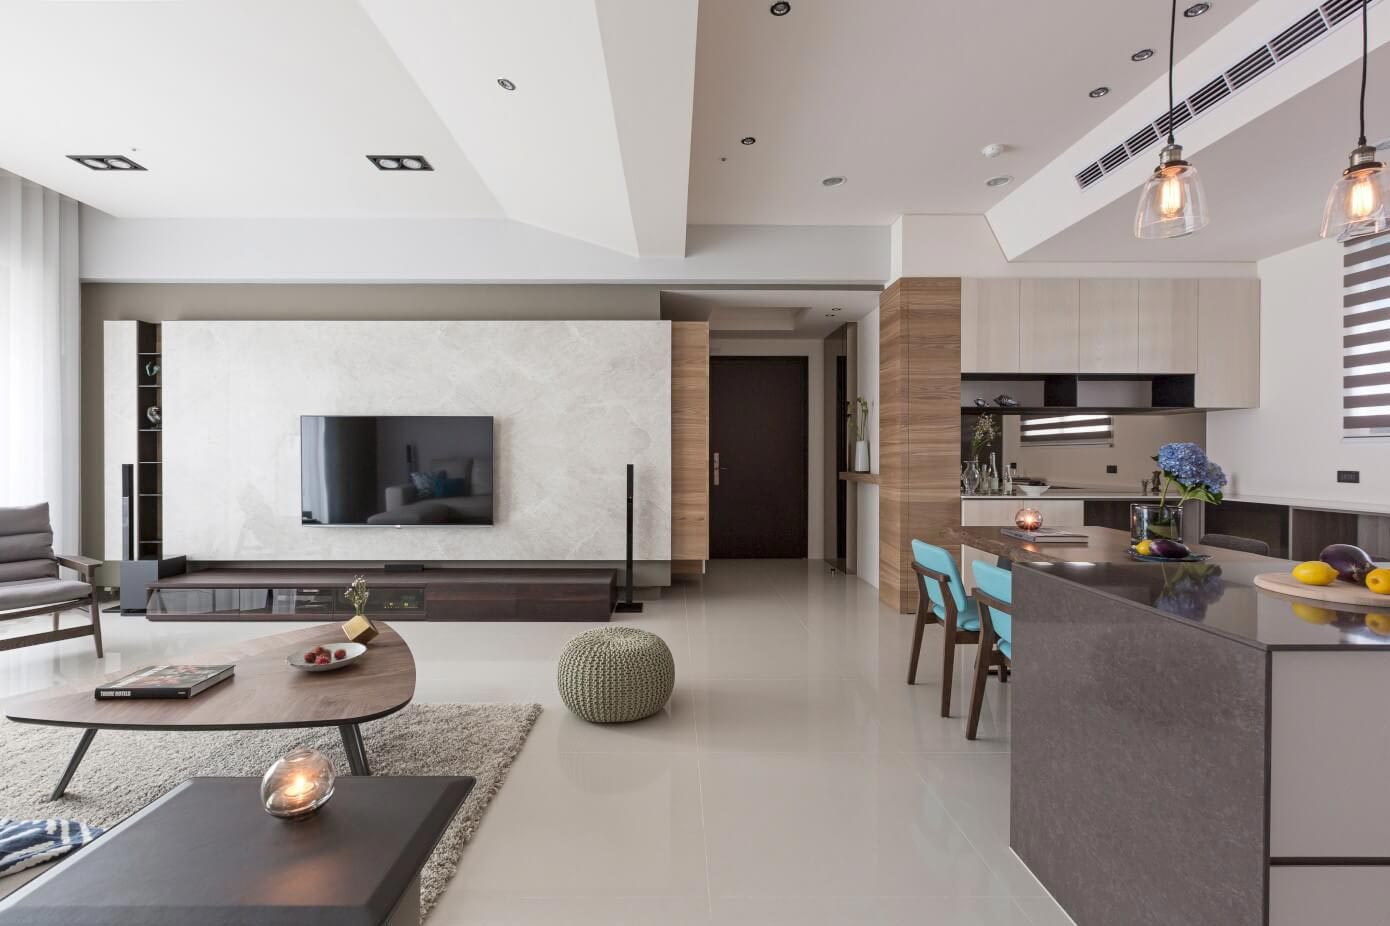 Simple and elegant apartment in Taipei by HOZO interior design - CAANdesign  Architecture and